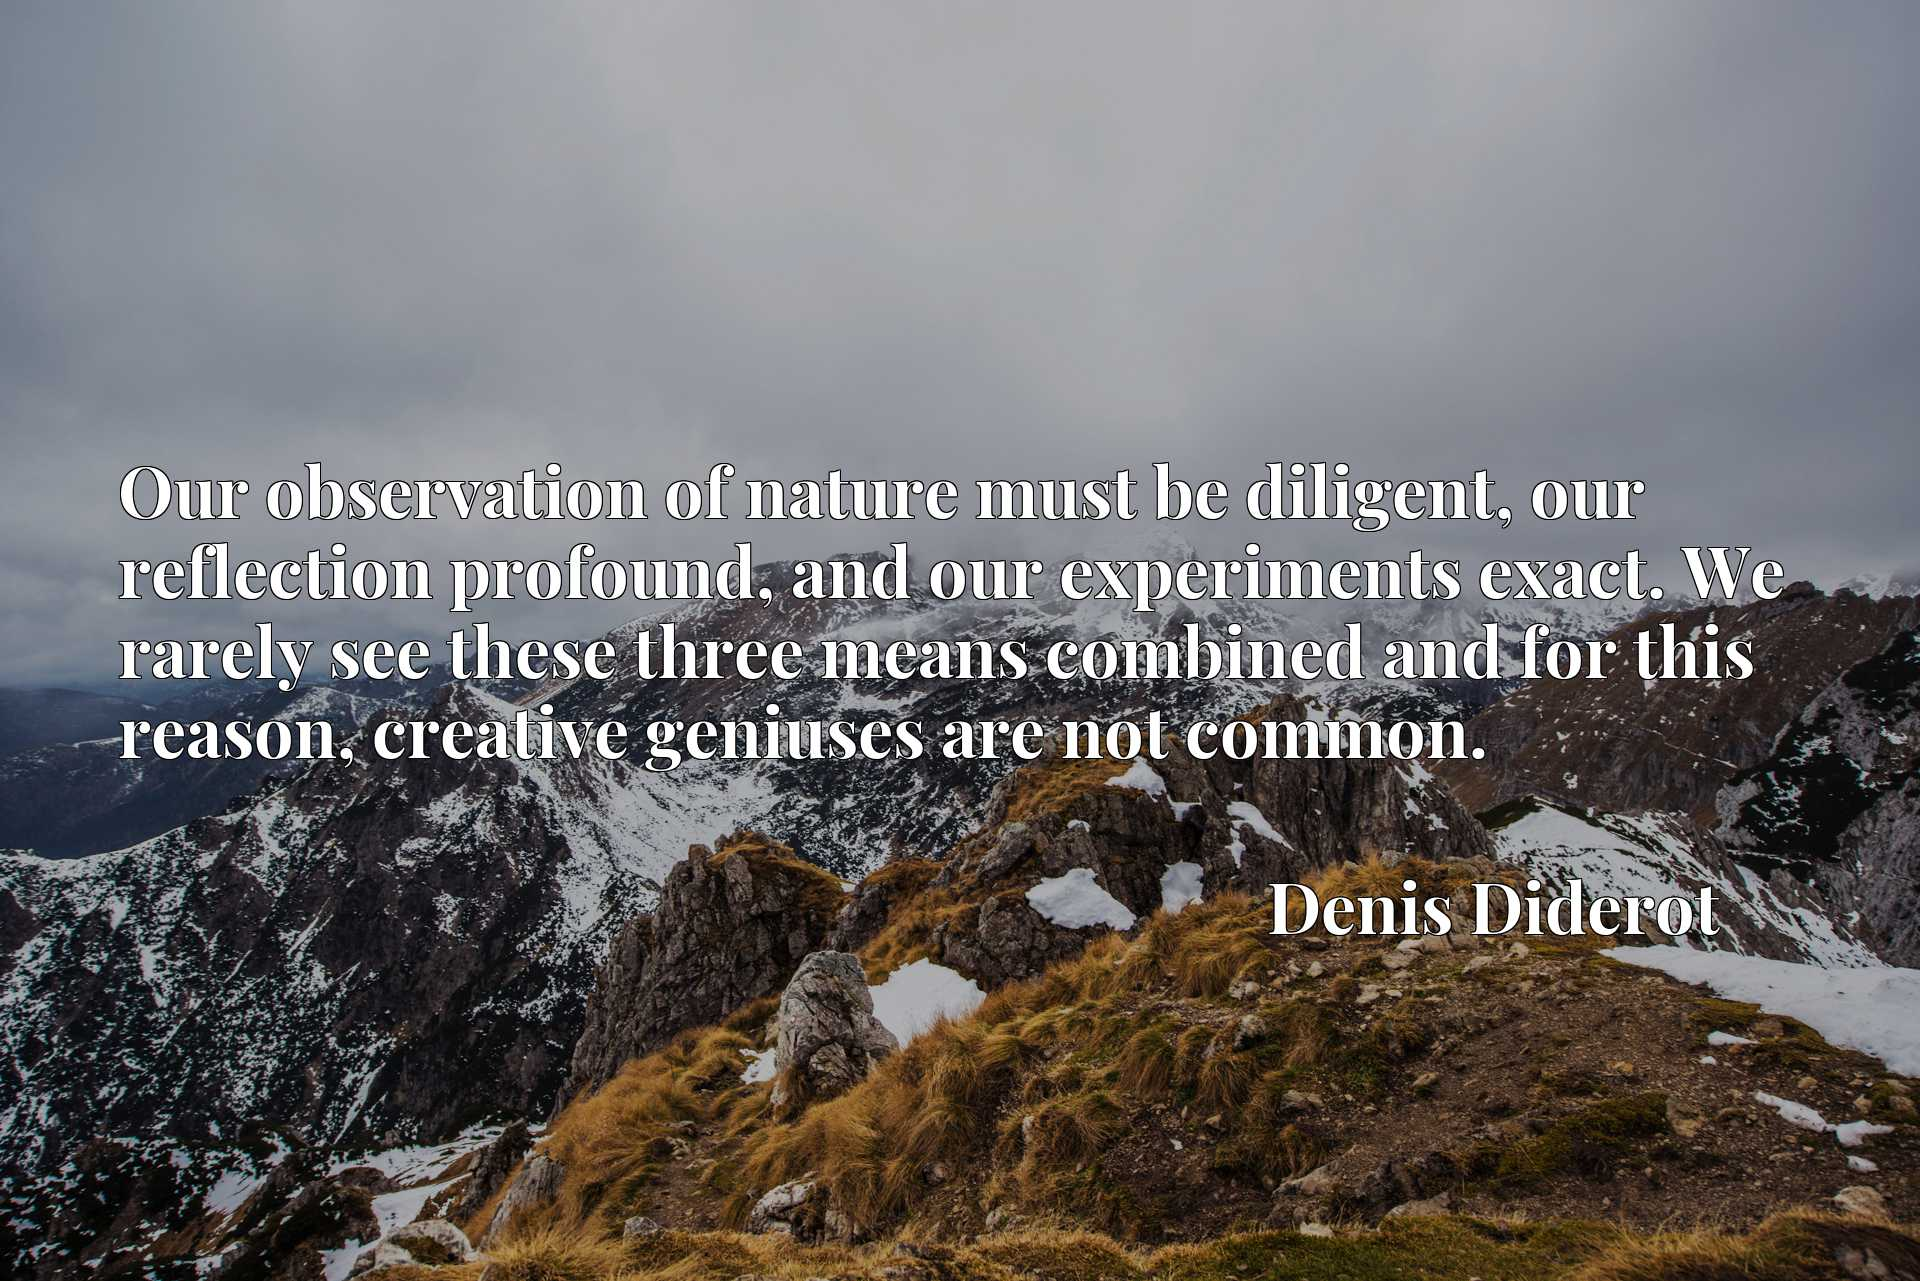 Quote Picture :Our observation of nature must be diligent, our reflection profound, and our experiments exact. We rarely see these three means combined and for this reason, creative geniuses are not common.